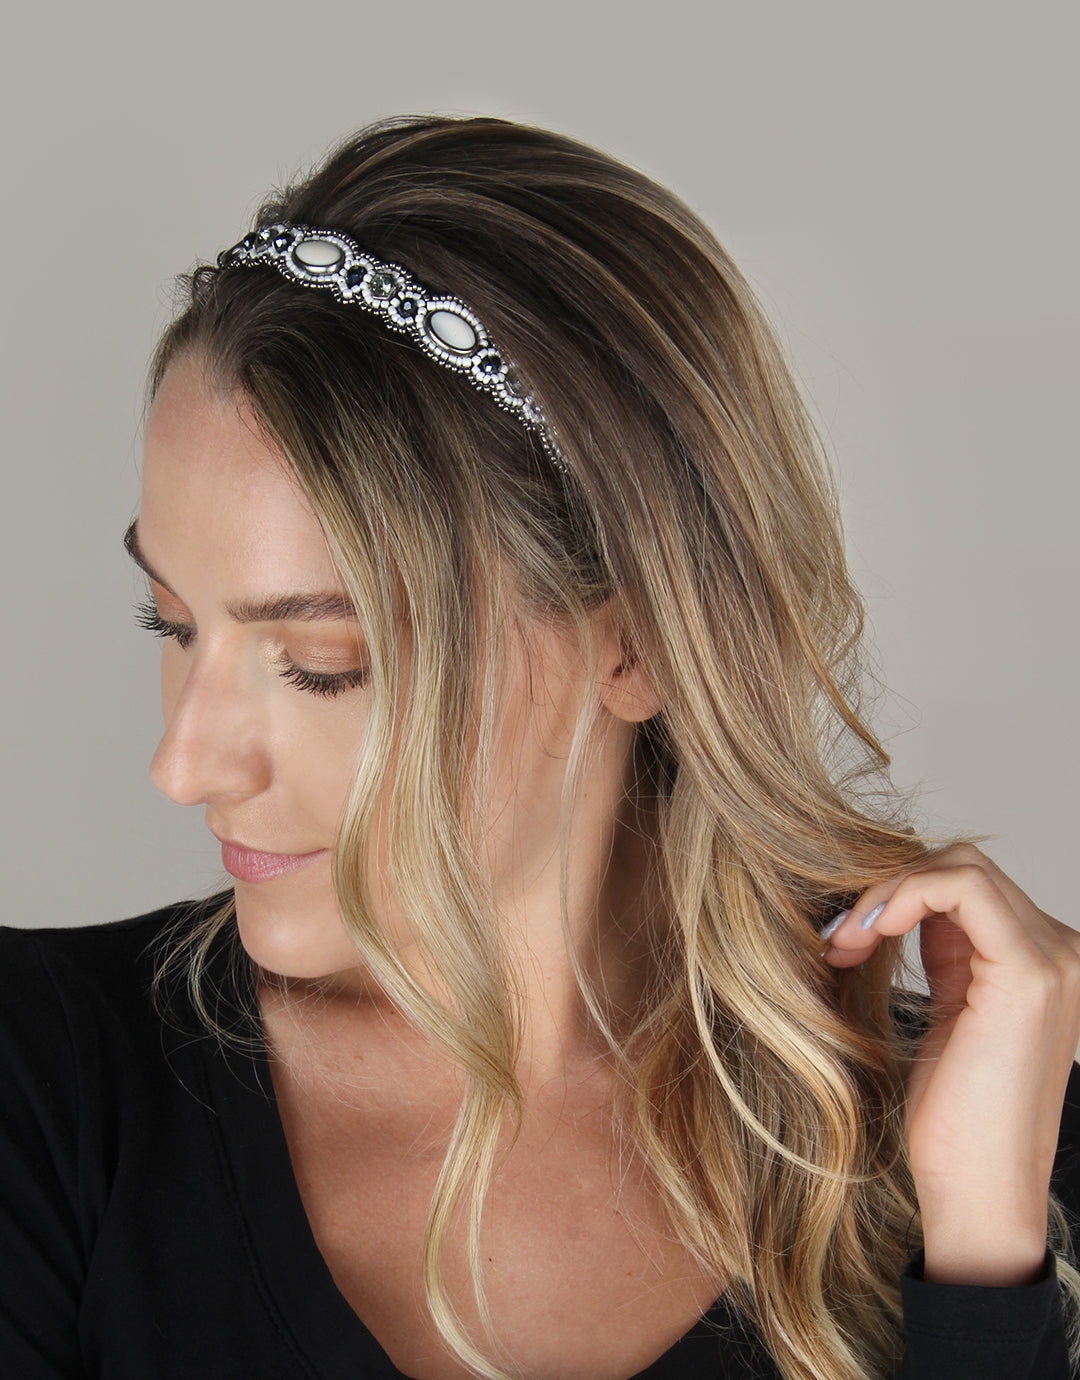 BANDED Women's Premium Headbands + Hair Accessories - Yacht Party - Luxe Headband